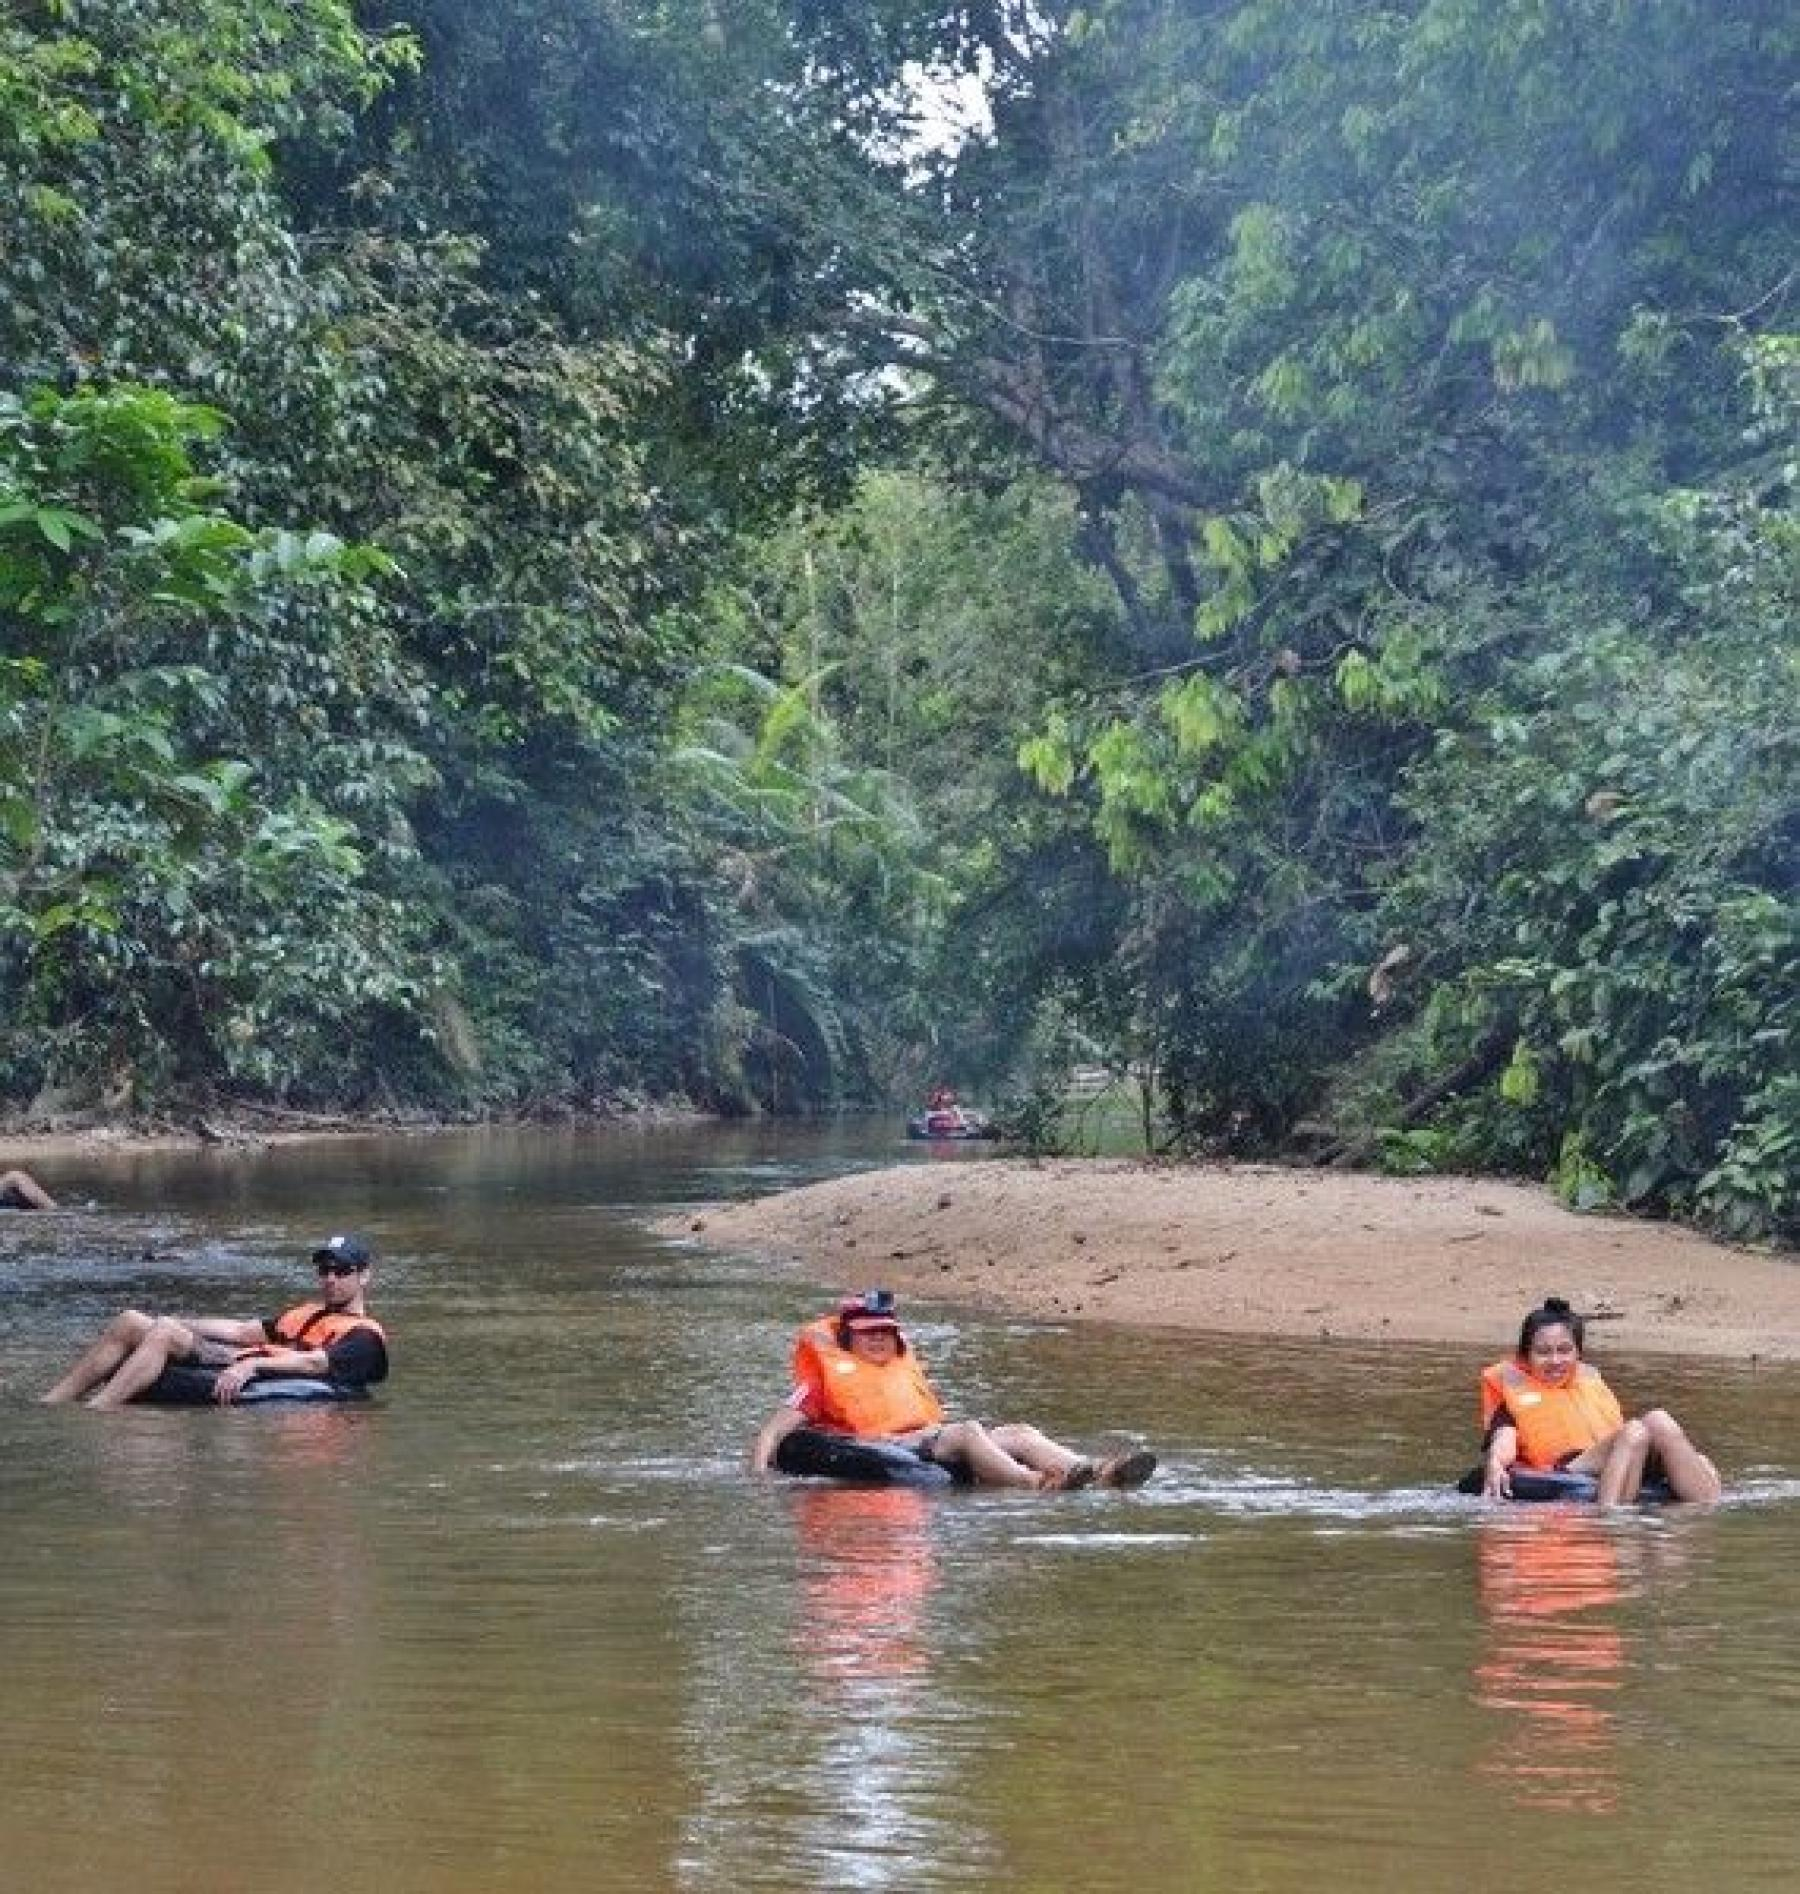 Let's experience the nature with some adventure activities starting at Kluang Johor Malaysia